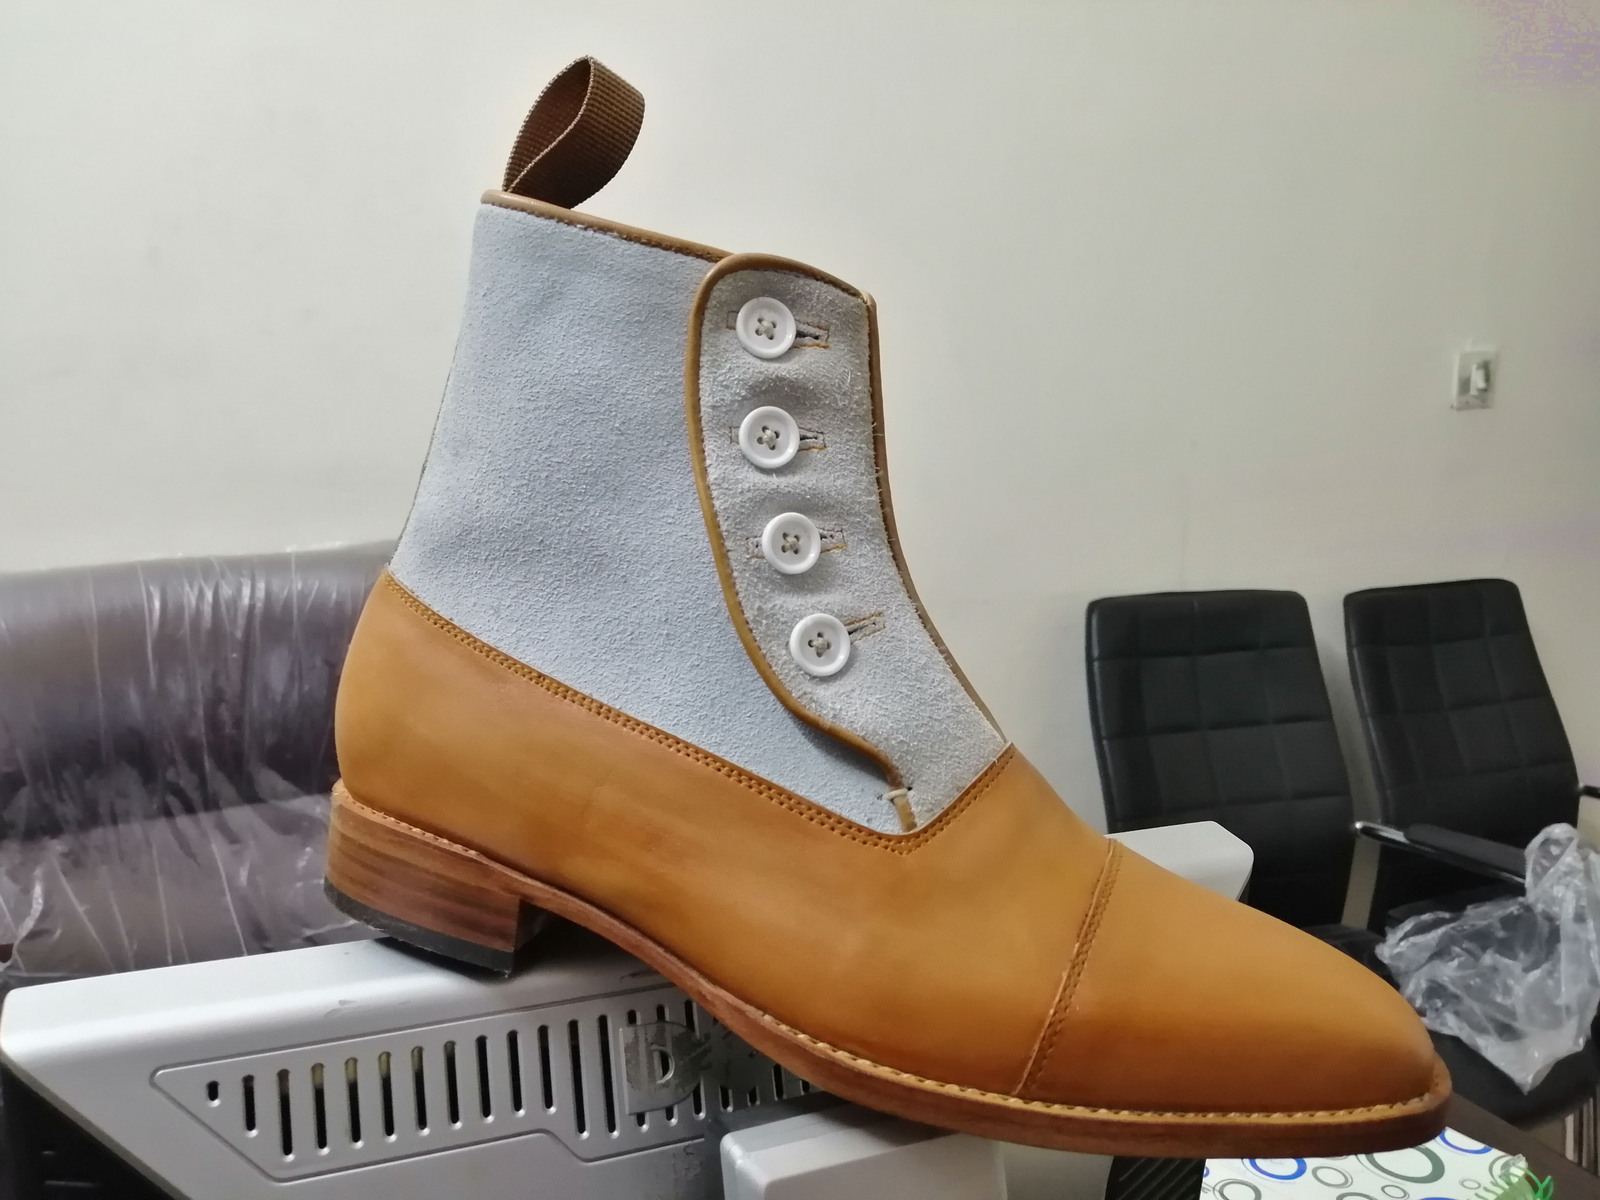 Latest Handmade Leather Suede Cap Toe Boots Men's Button Top Ankle Boots, Dress Formal Boots